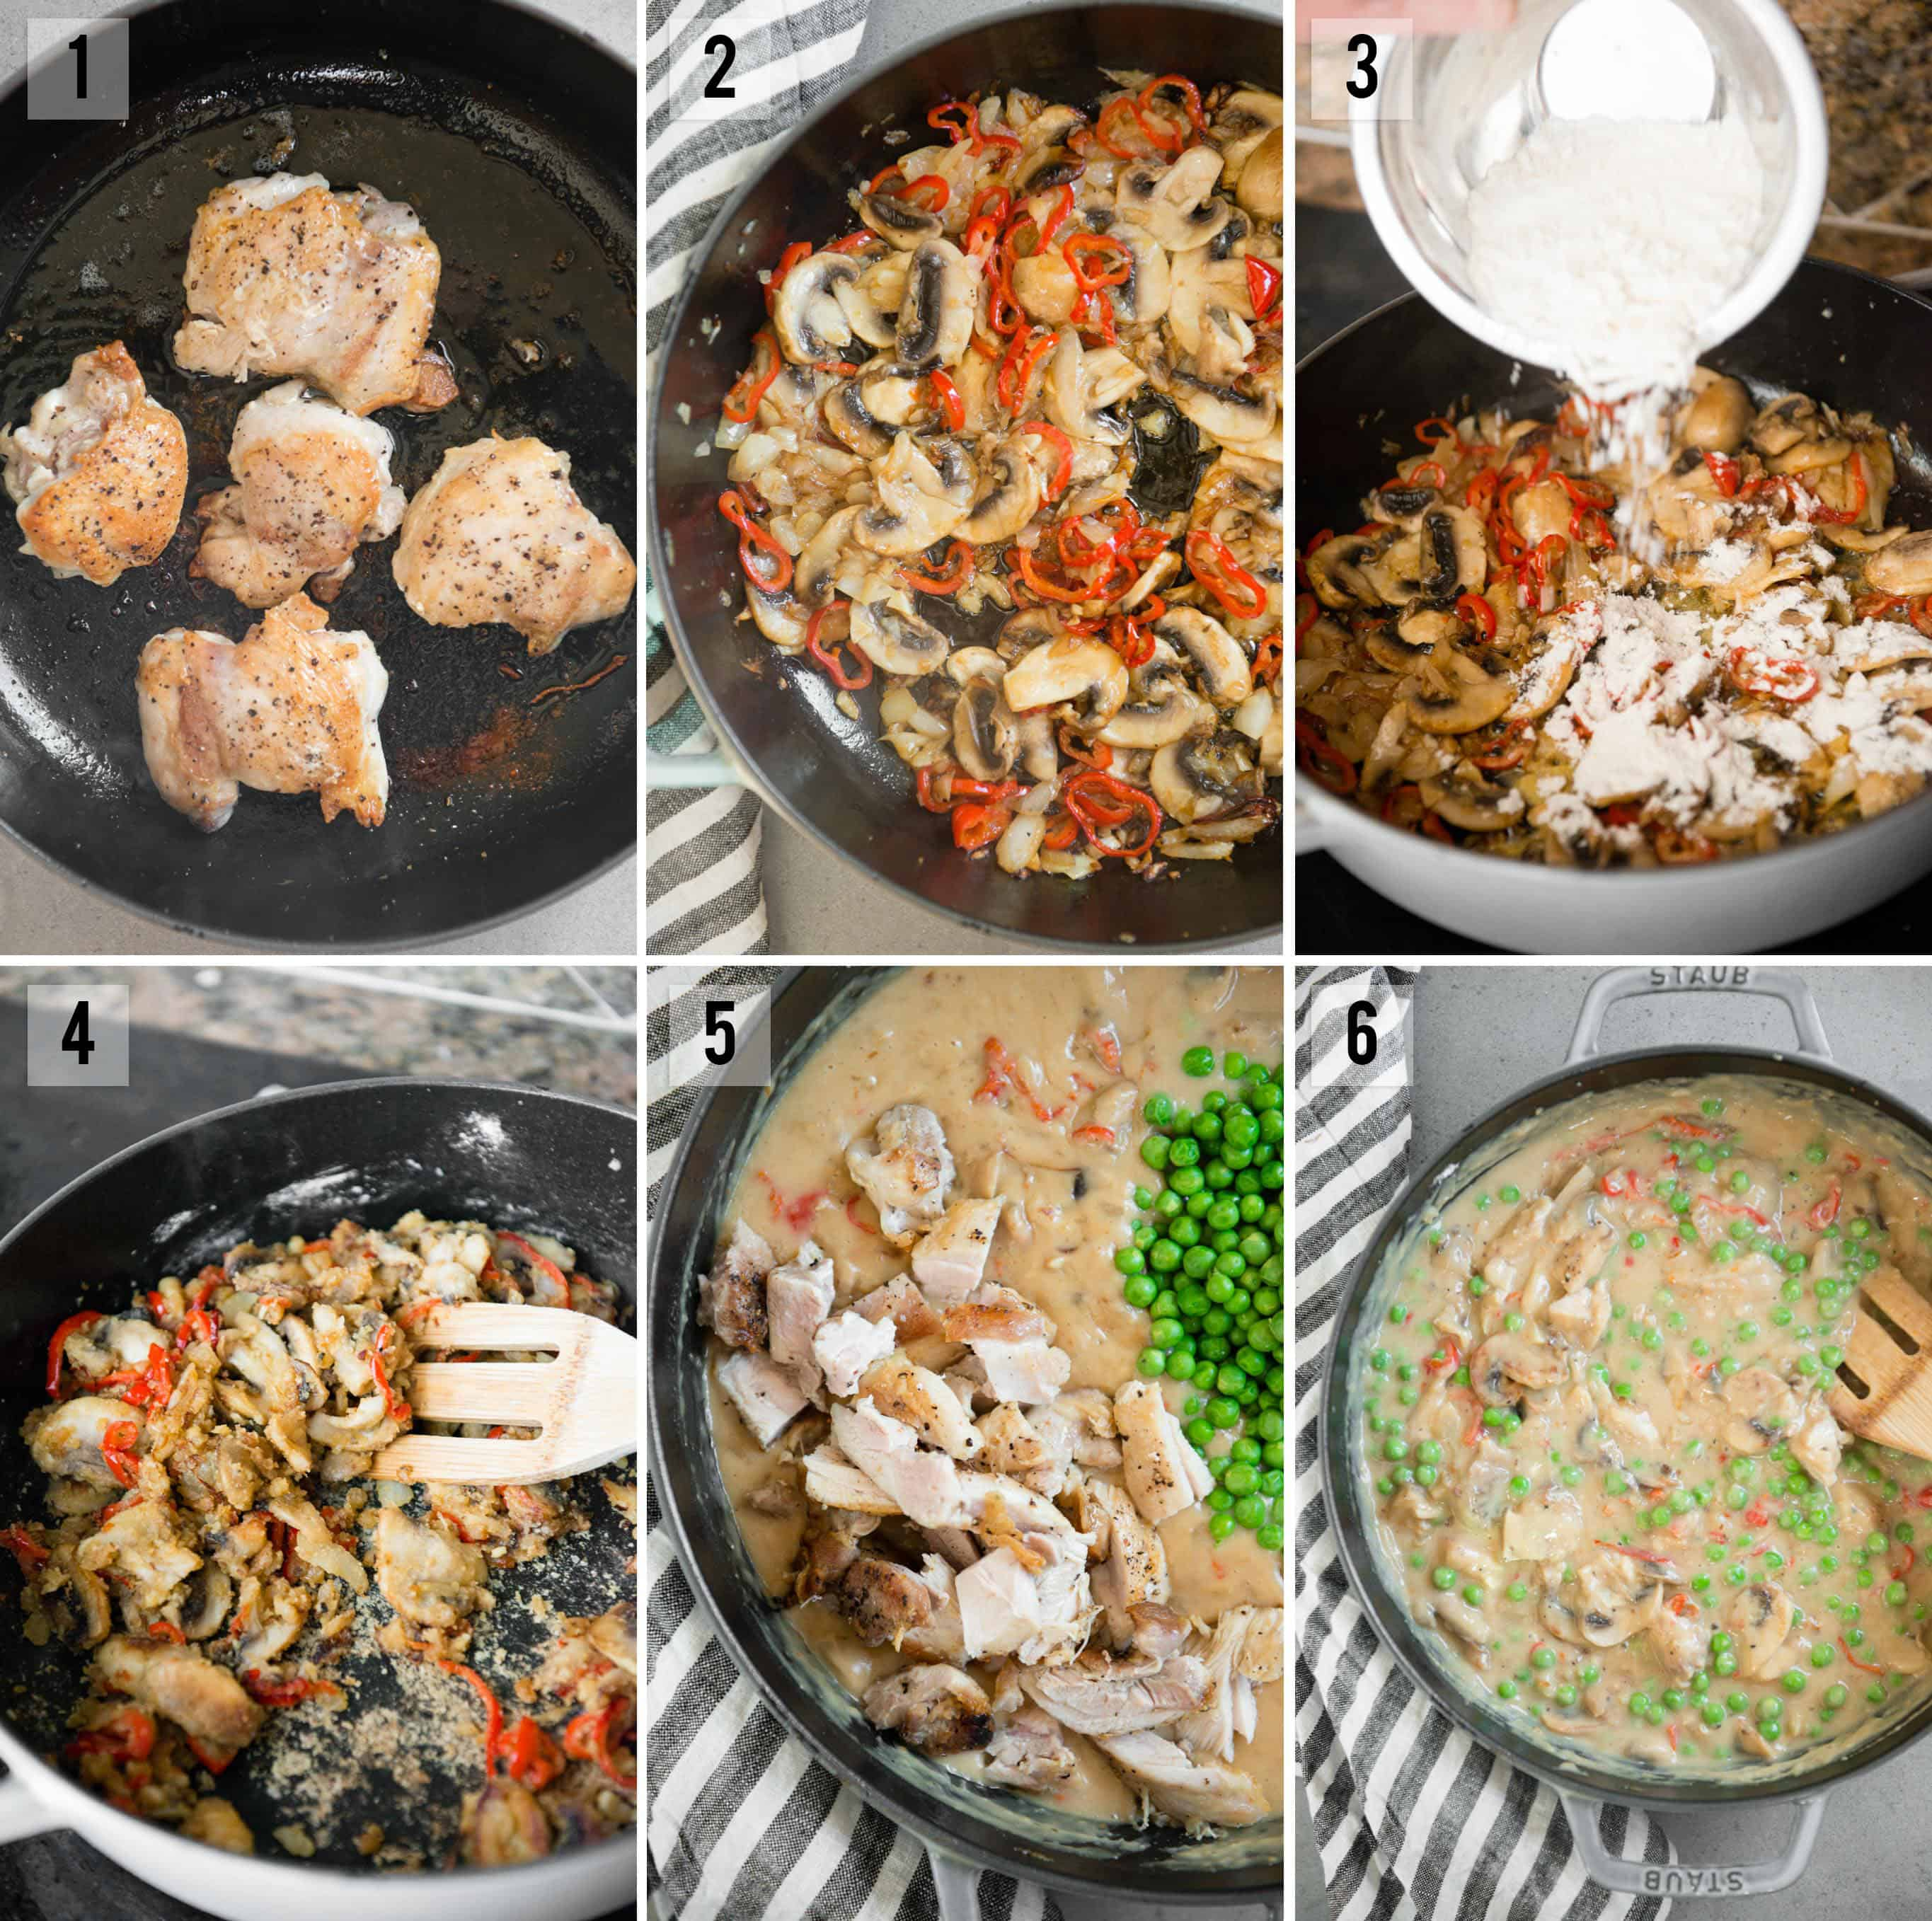 step by step instructions on how to make Chicken a la King